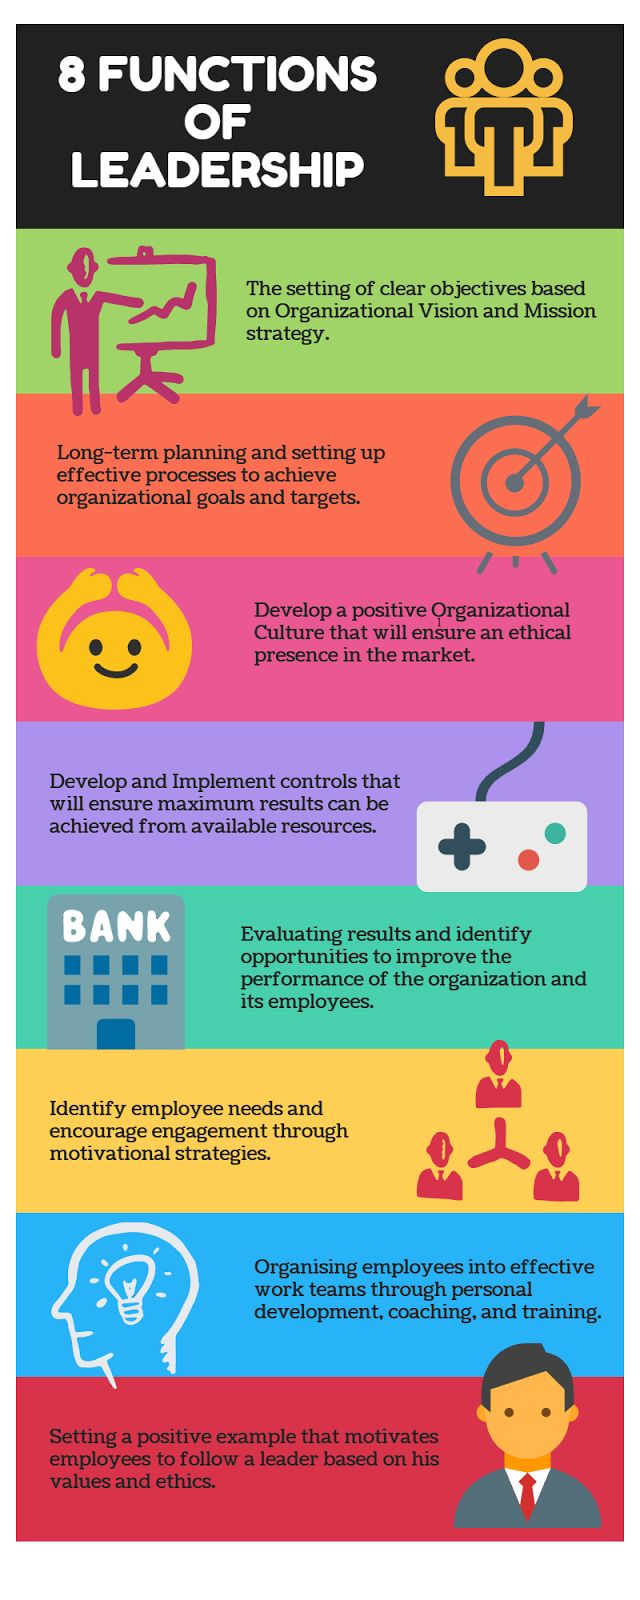 Productivity By Design: 8 Functions of Leadership